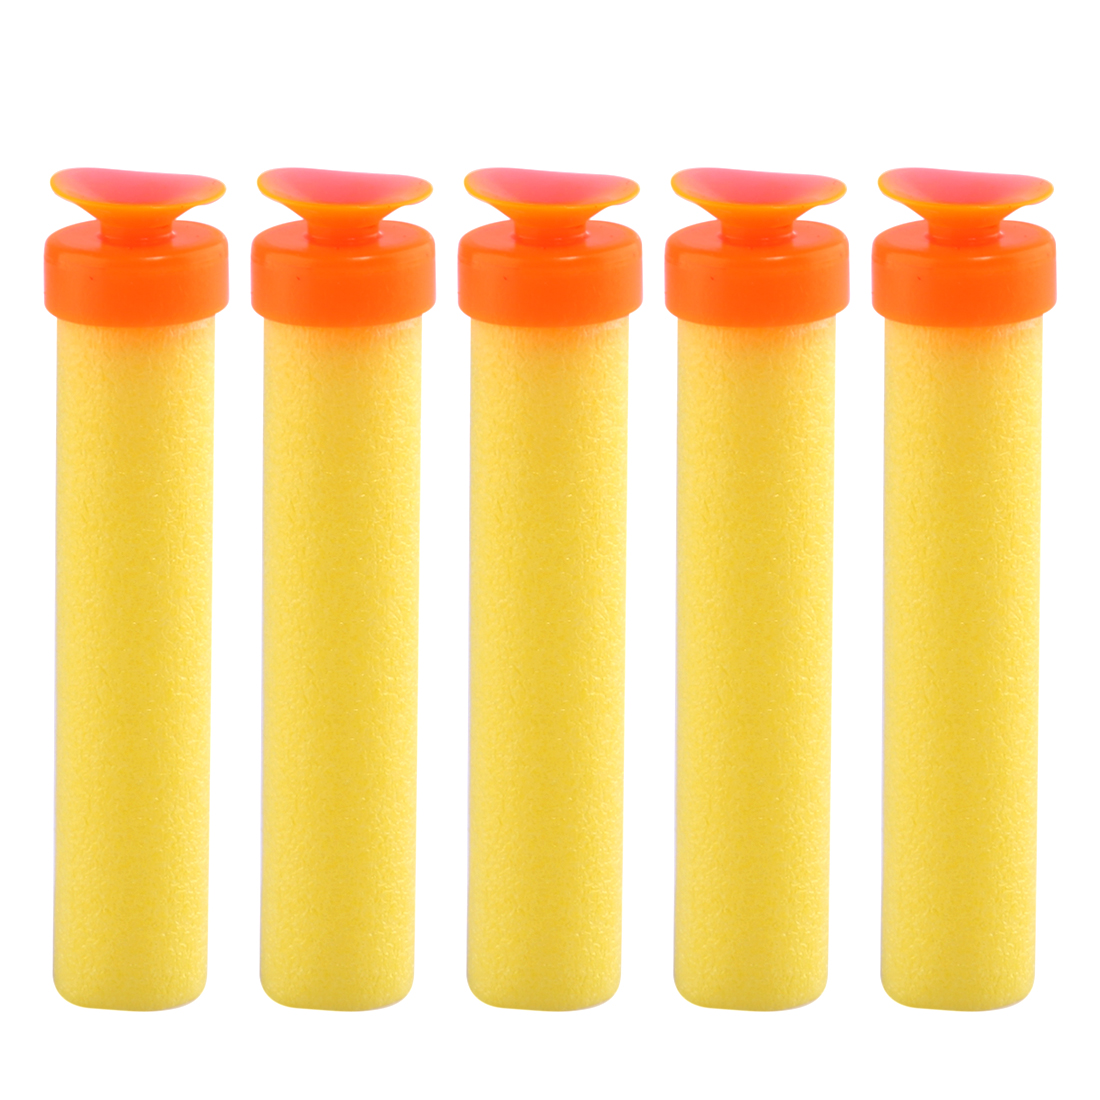 100pcs 7*1.1CM Big End Sucker for Target Practice - Orange + Yellow ...